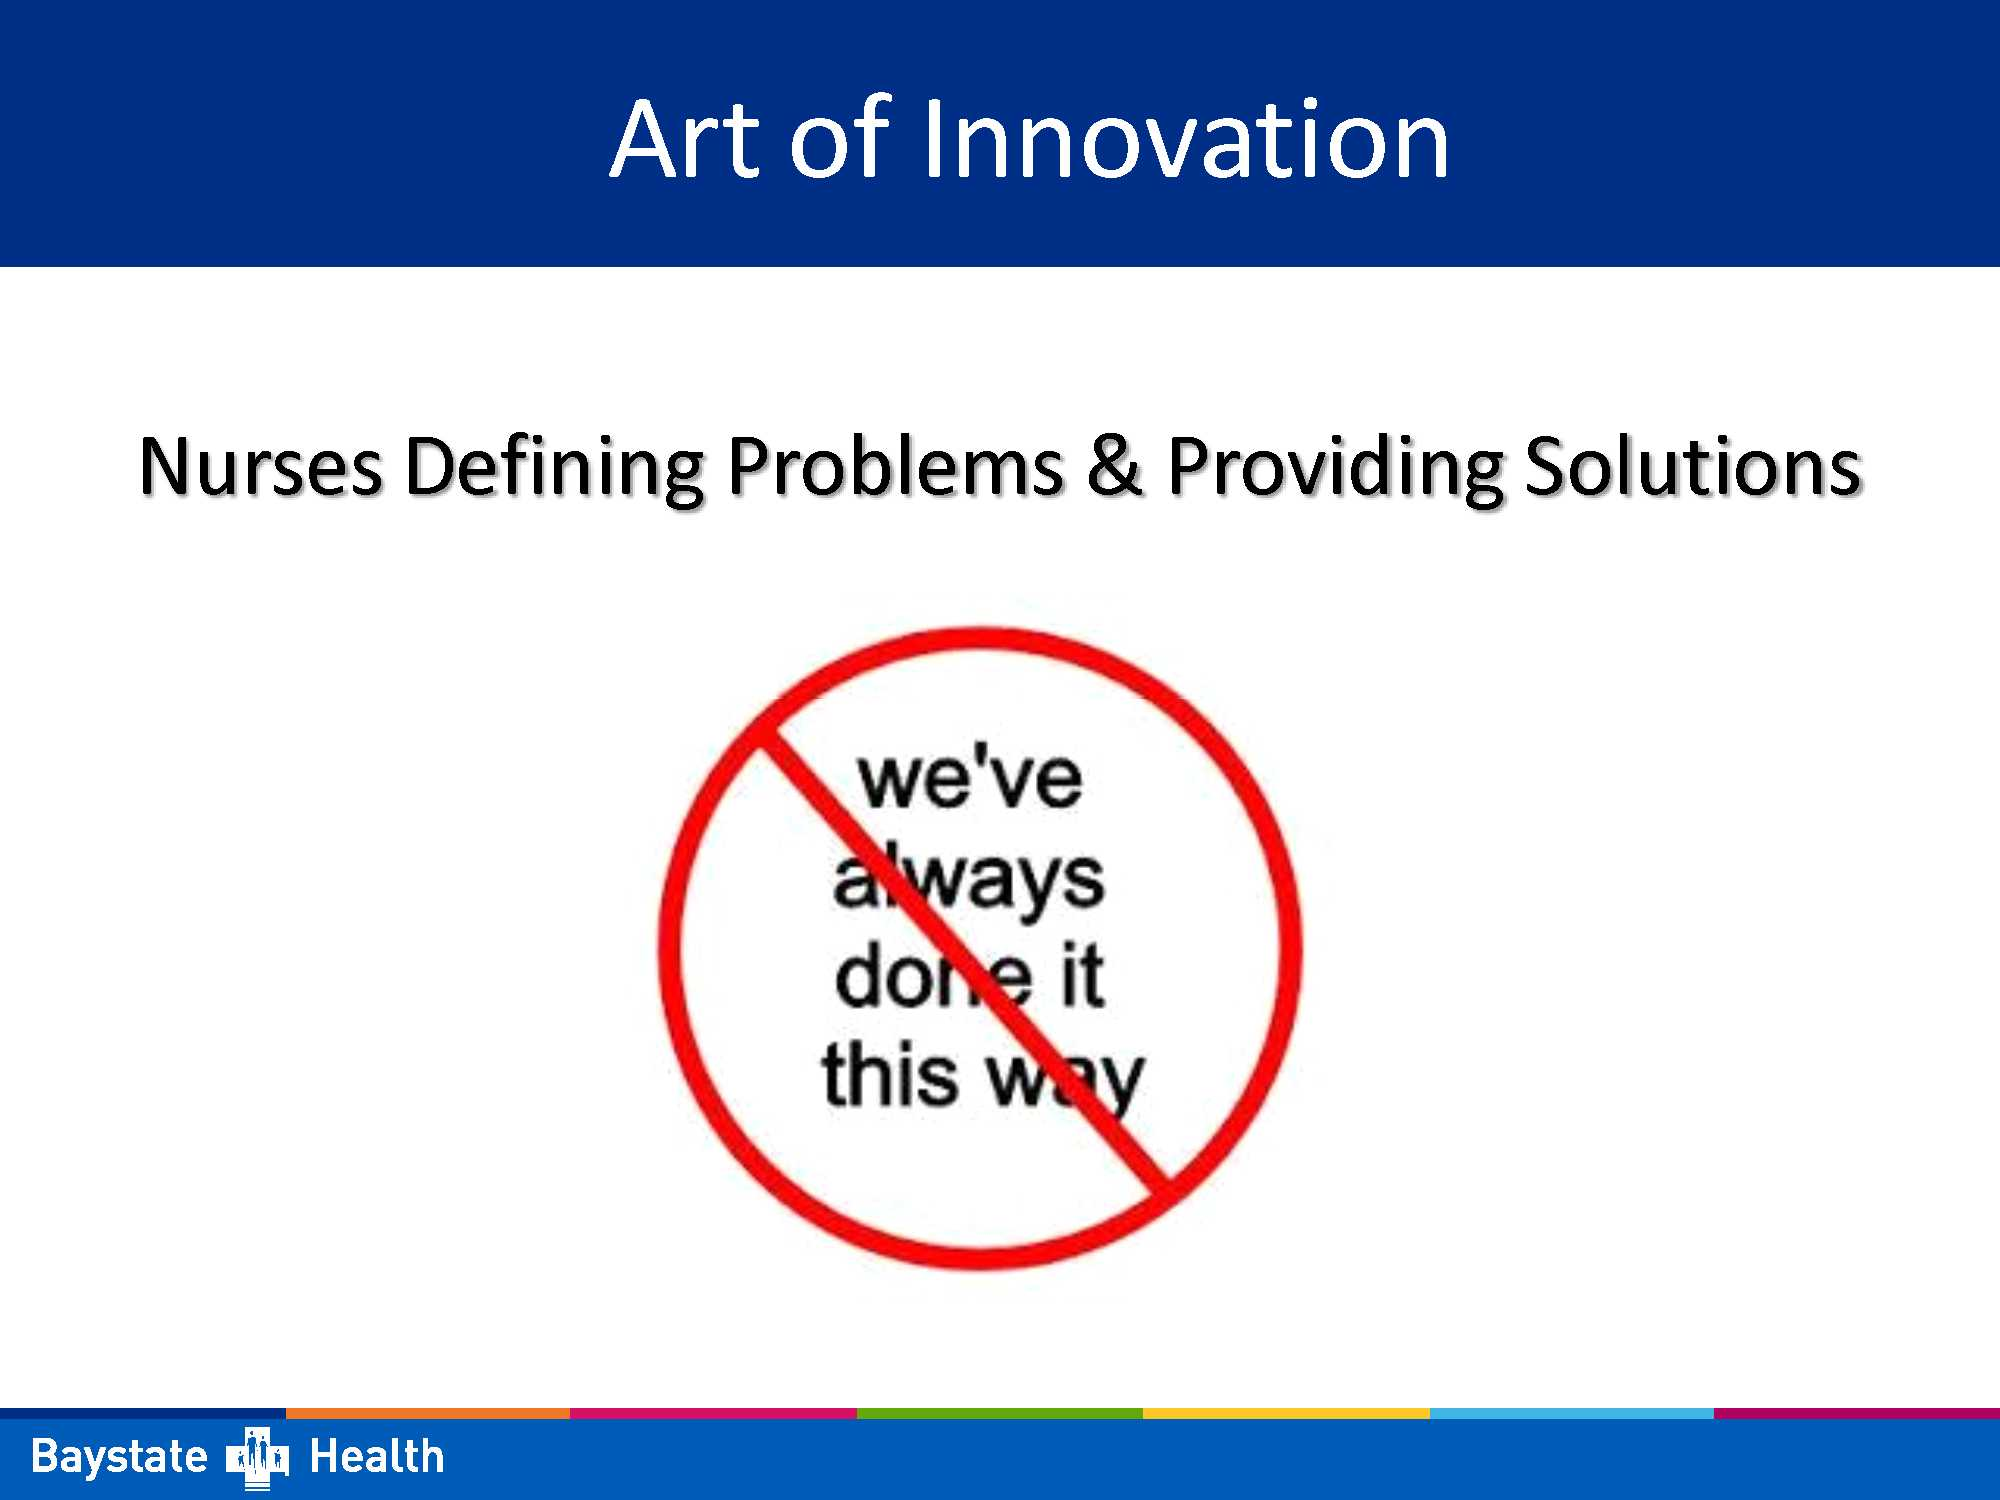 Nursing: The Art of Innovation